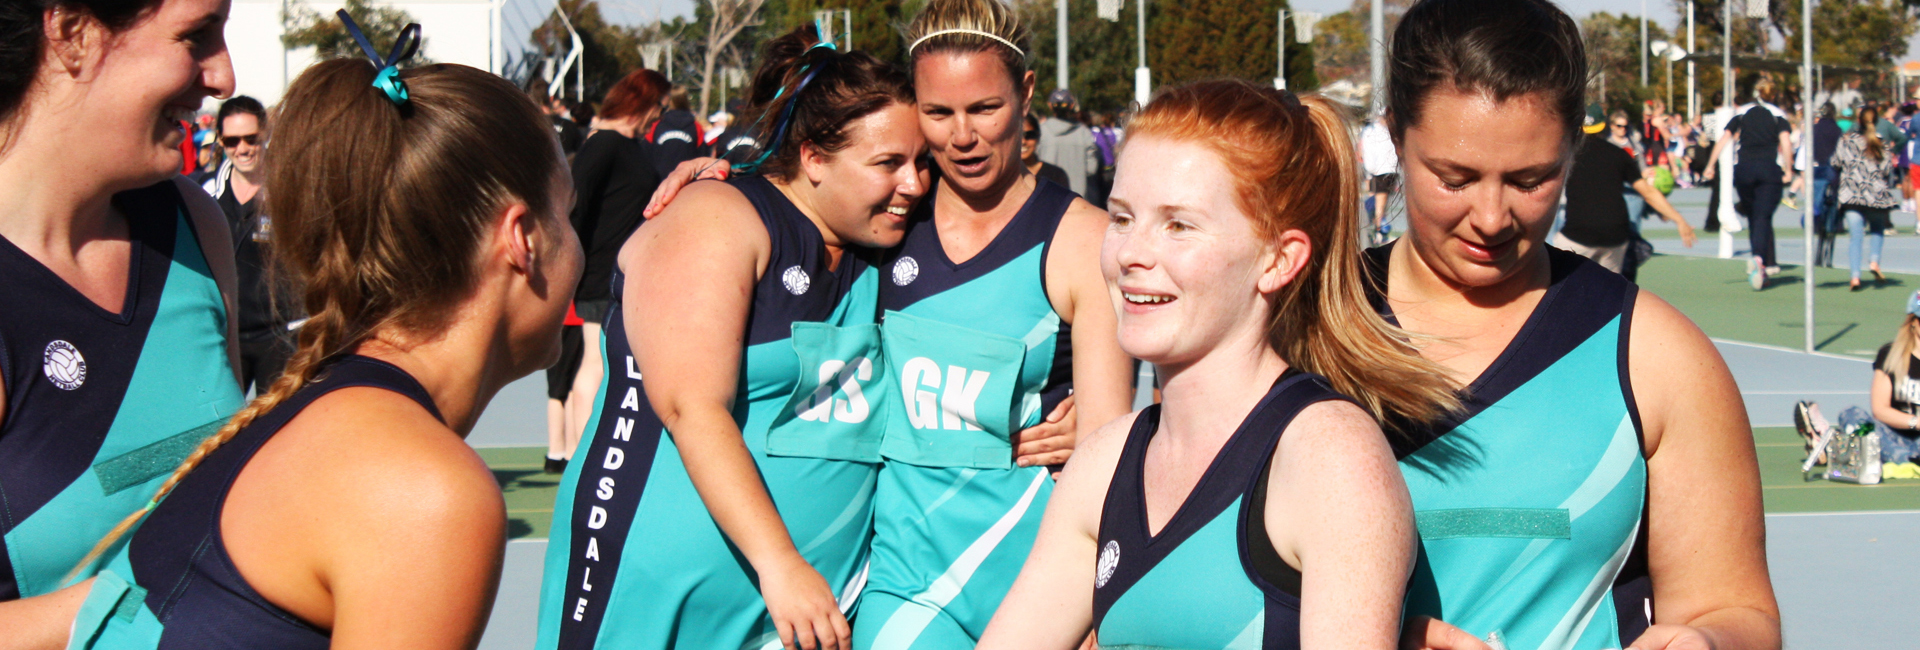 Landsdale Netball Club Register now!